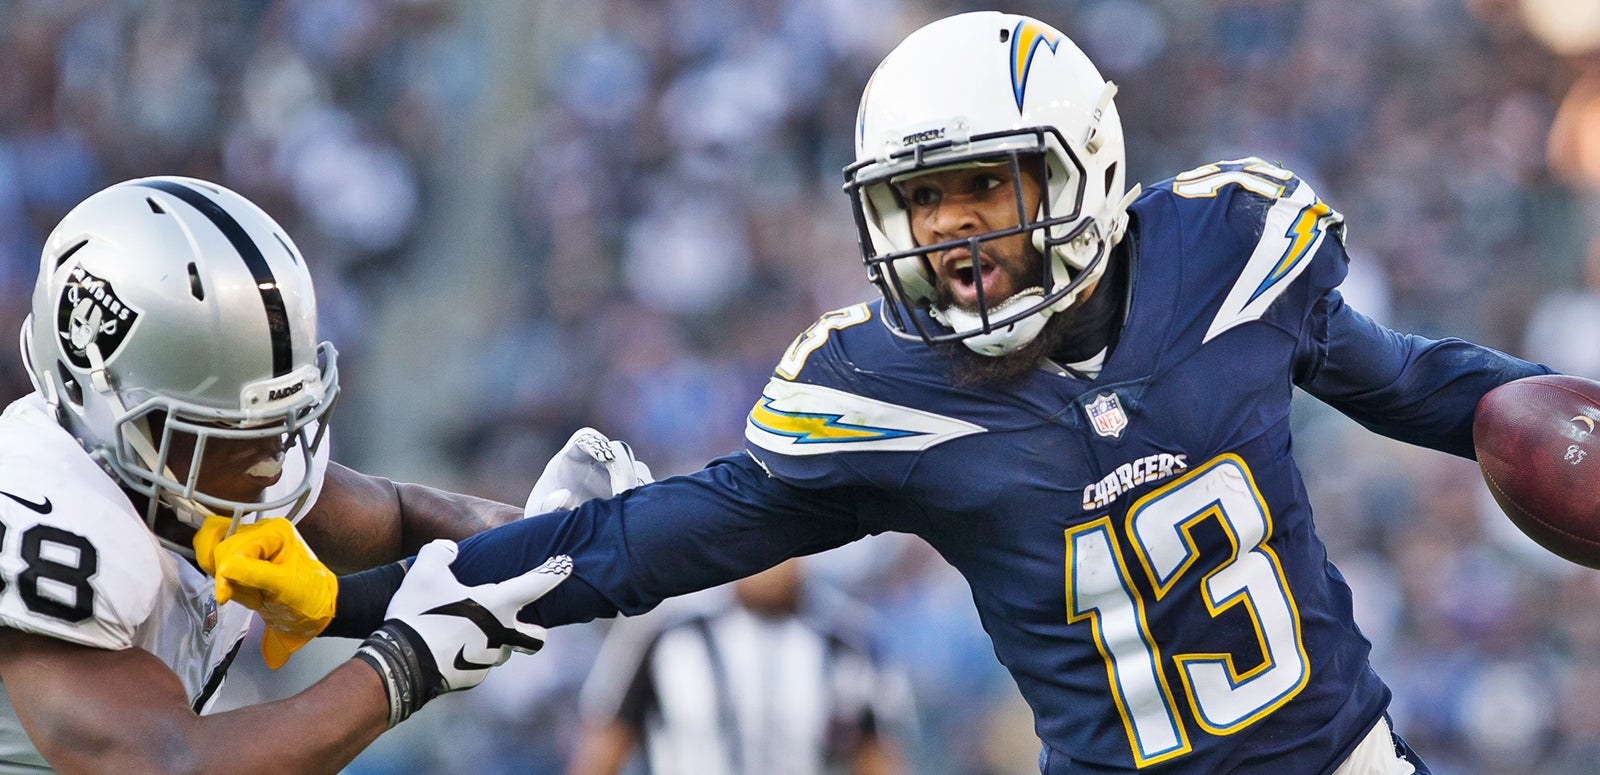 NFL: Los Angeles Chargers vs. Oakland Raiders